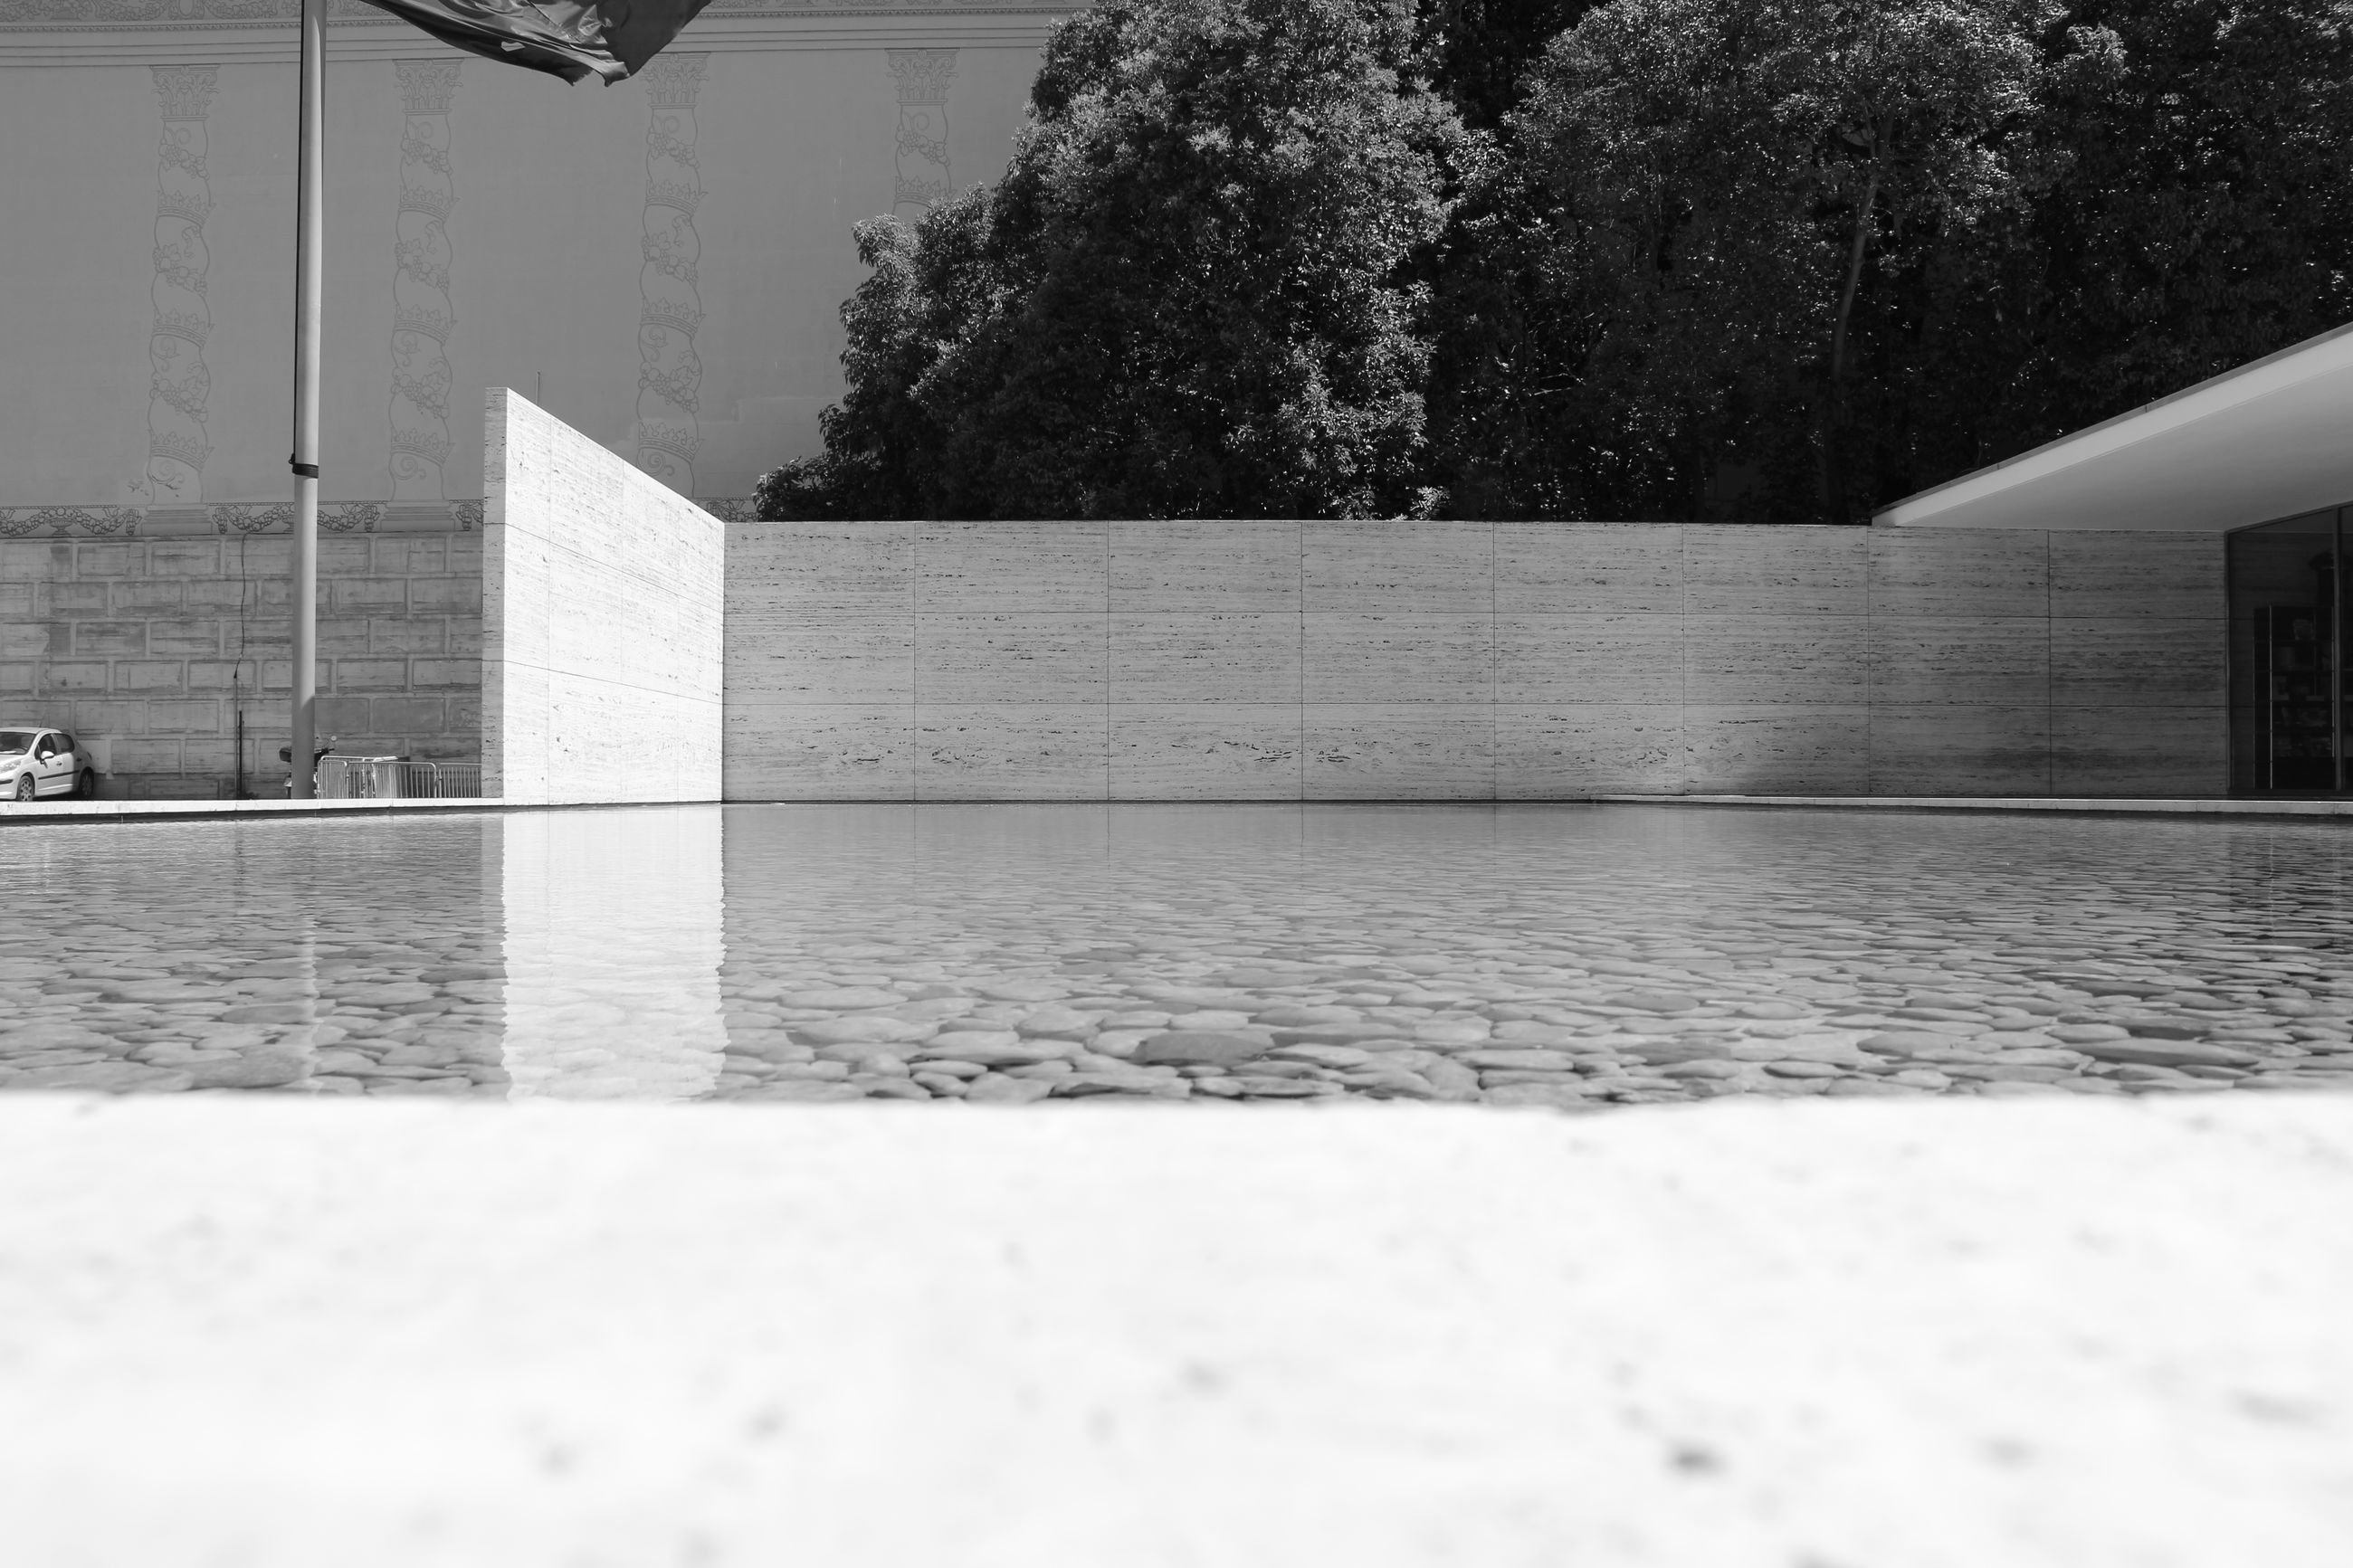 architecture, built structure, tree, building exterior, water, surface level, day, no people